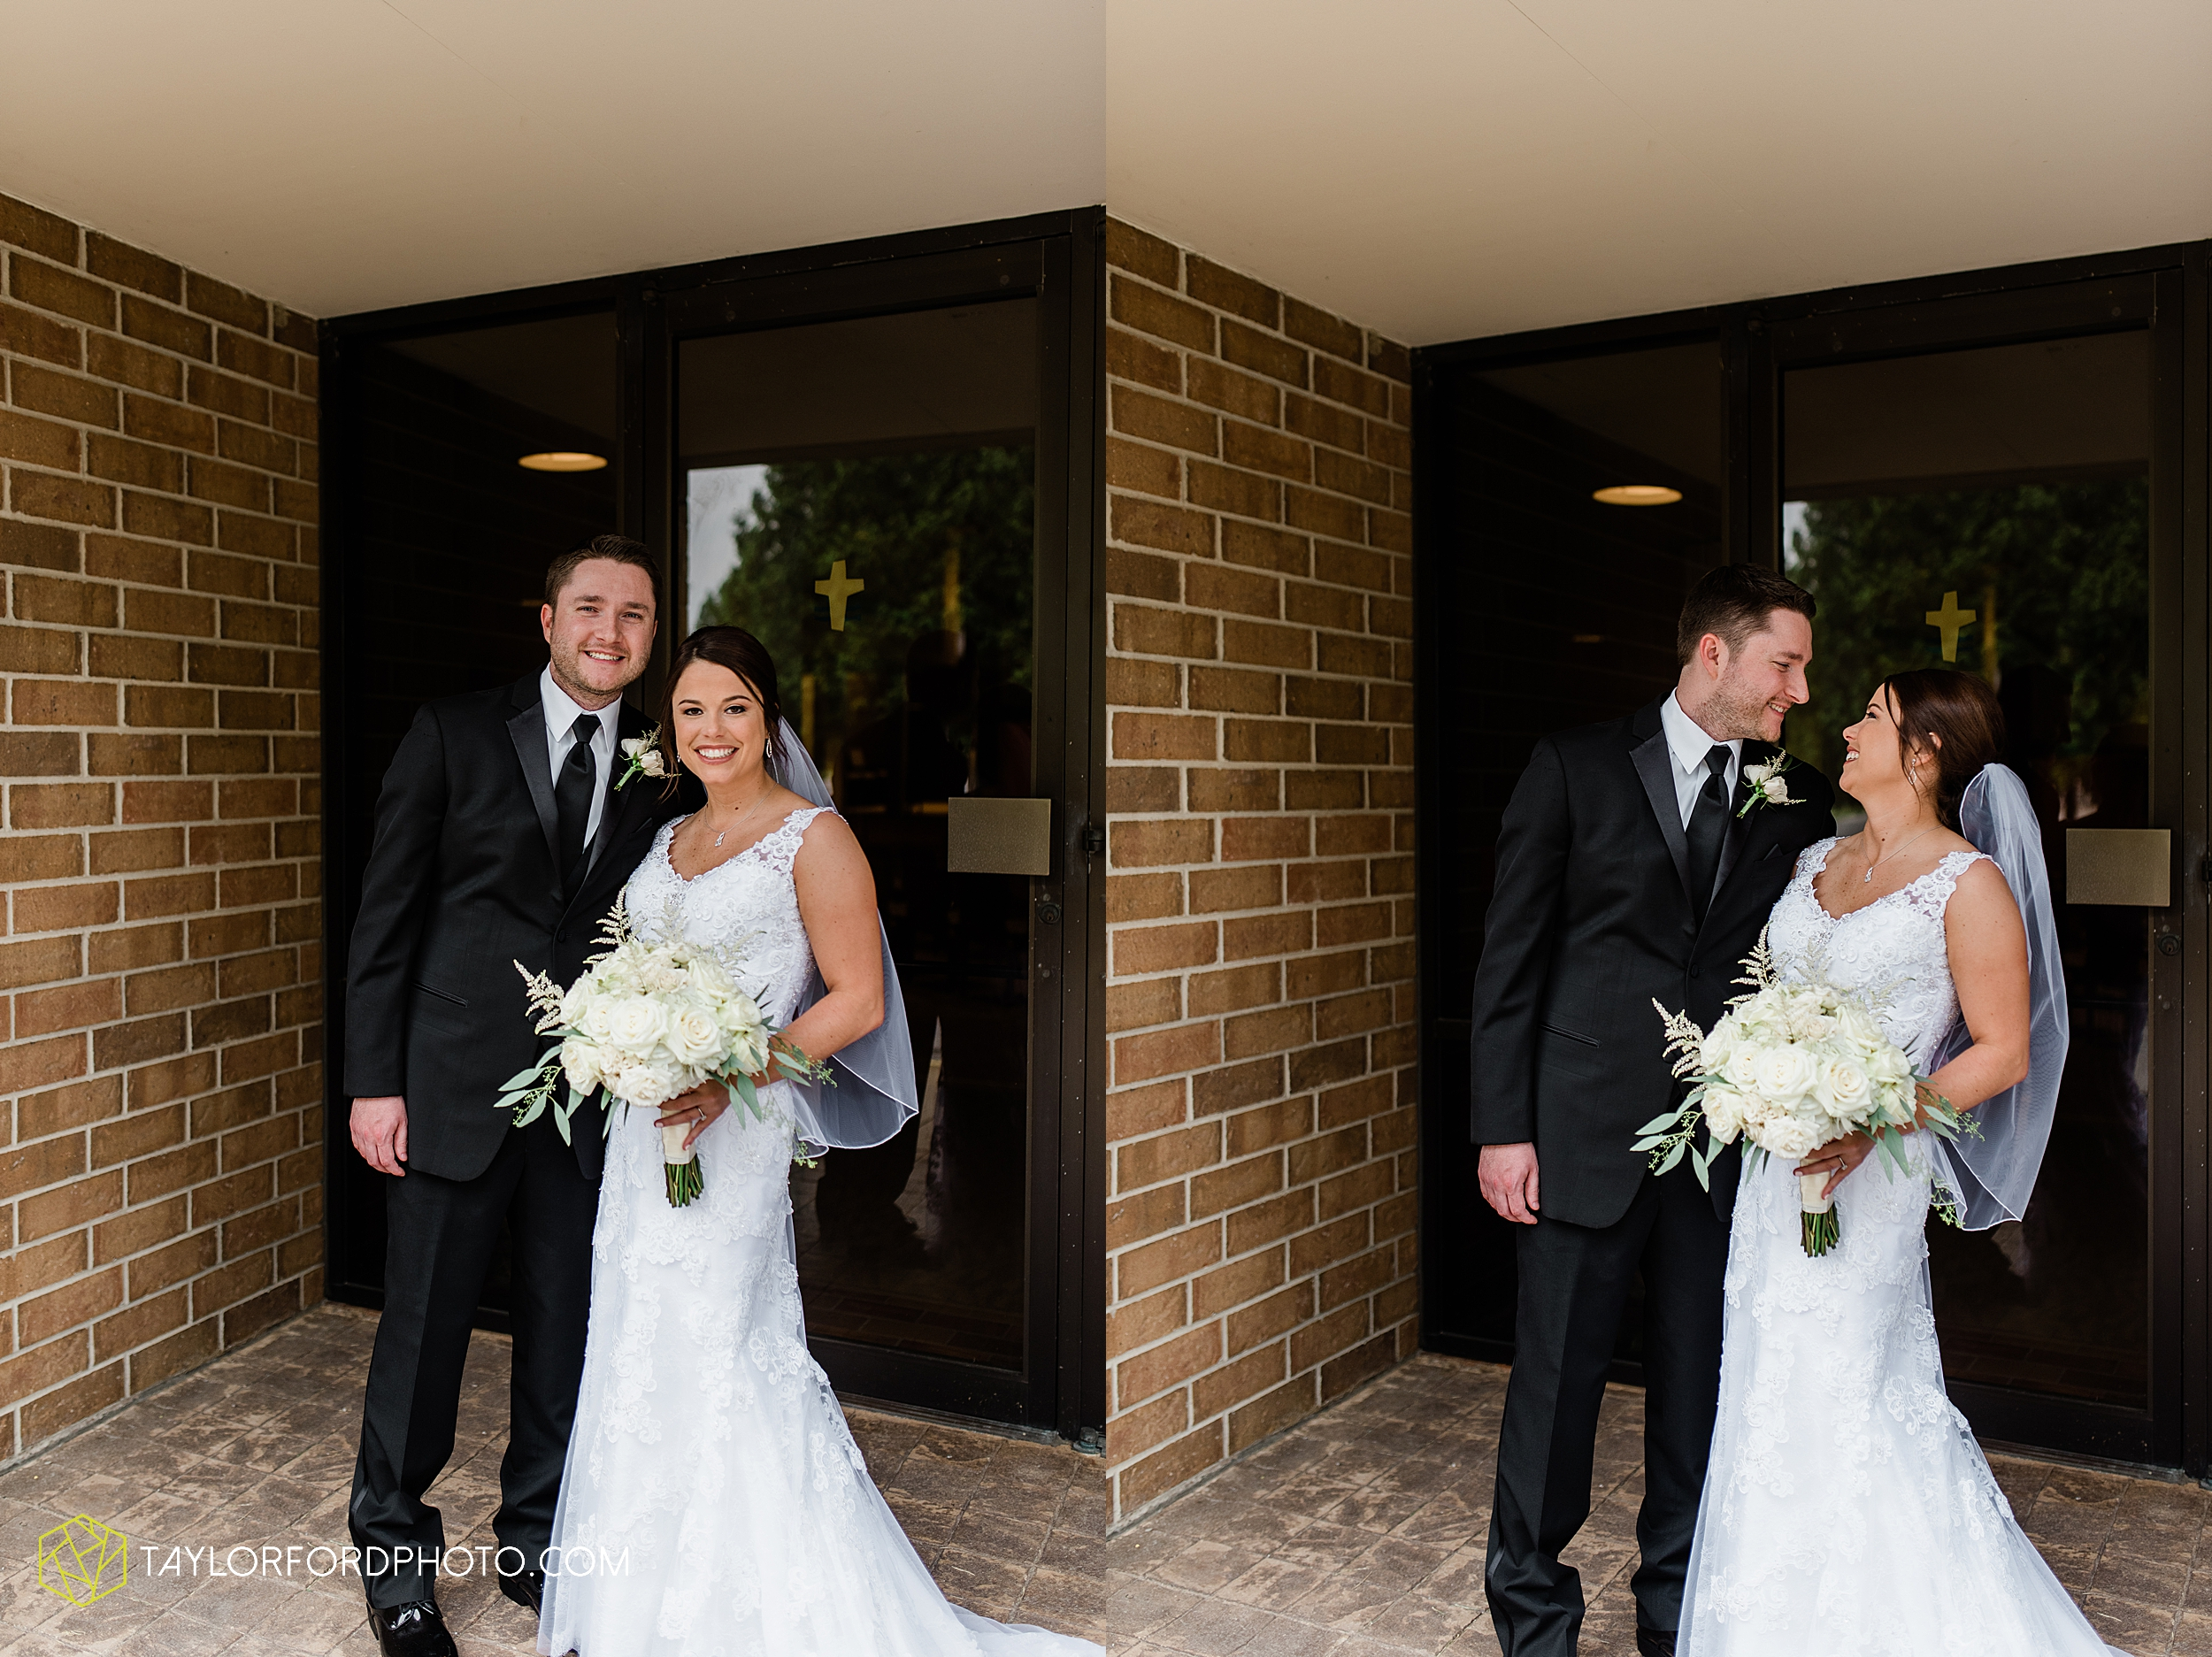 sullivan-st-francis-university-performing-arts-center-usf-saint-charles-borromeo-catholic-church-downtown-fort-wayne-indiana-wedding-photography-taylor-ford-hirschy-photographer_3219.jpg